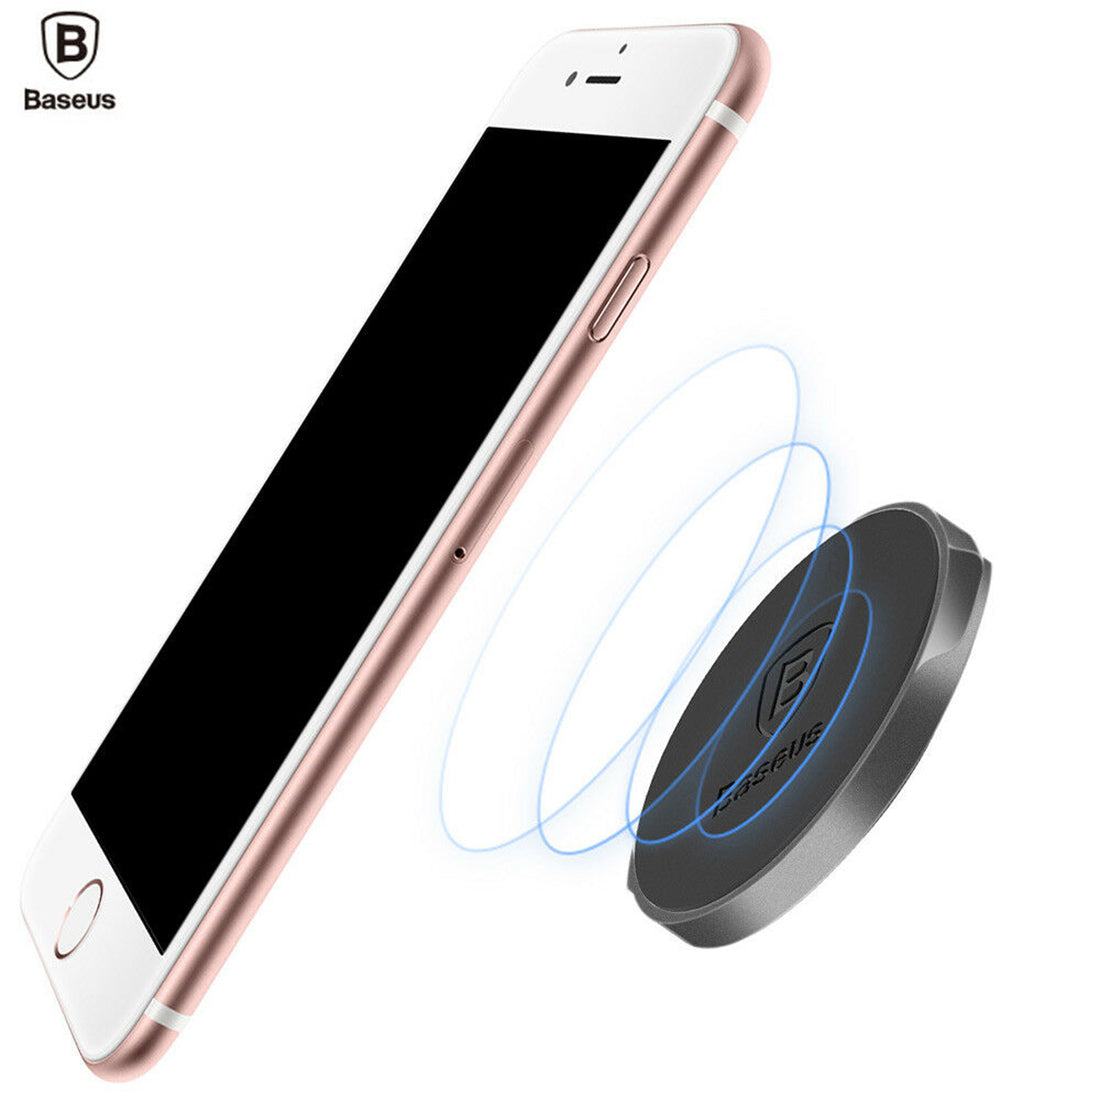 Flat Type Magnetic Suction Phone Mount